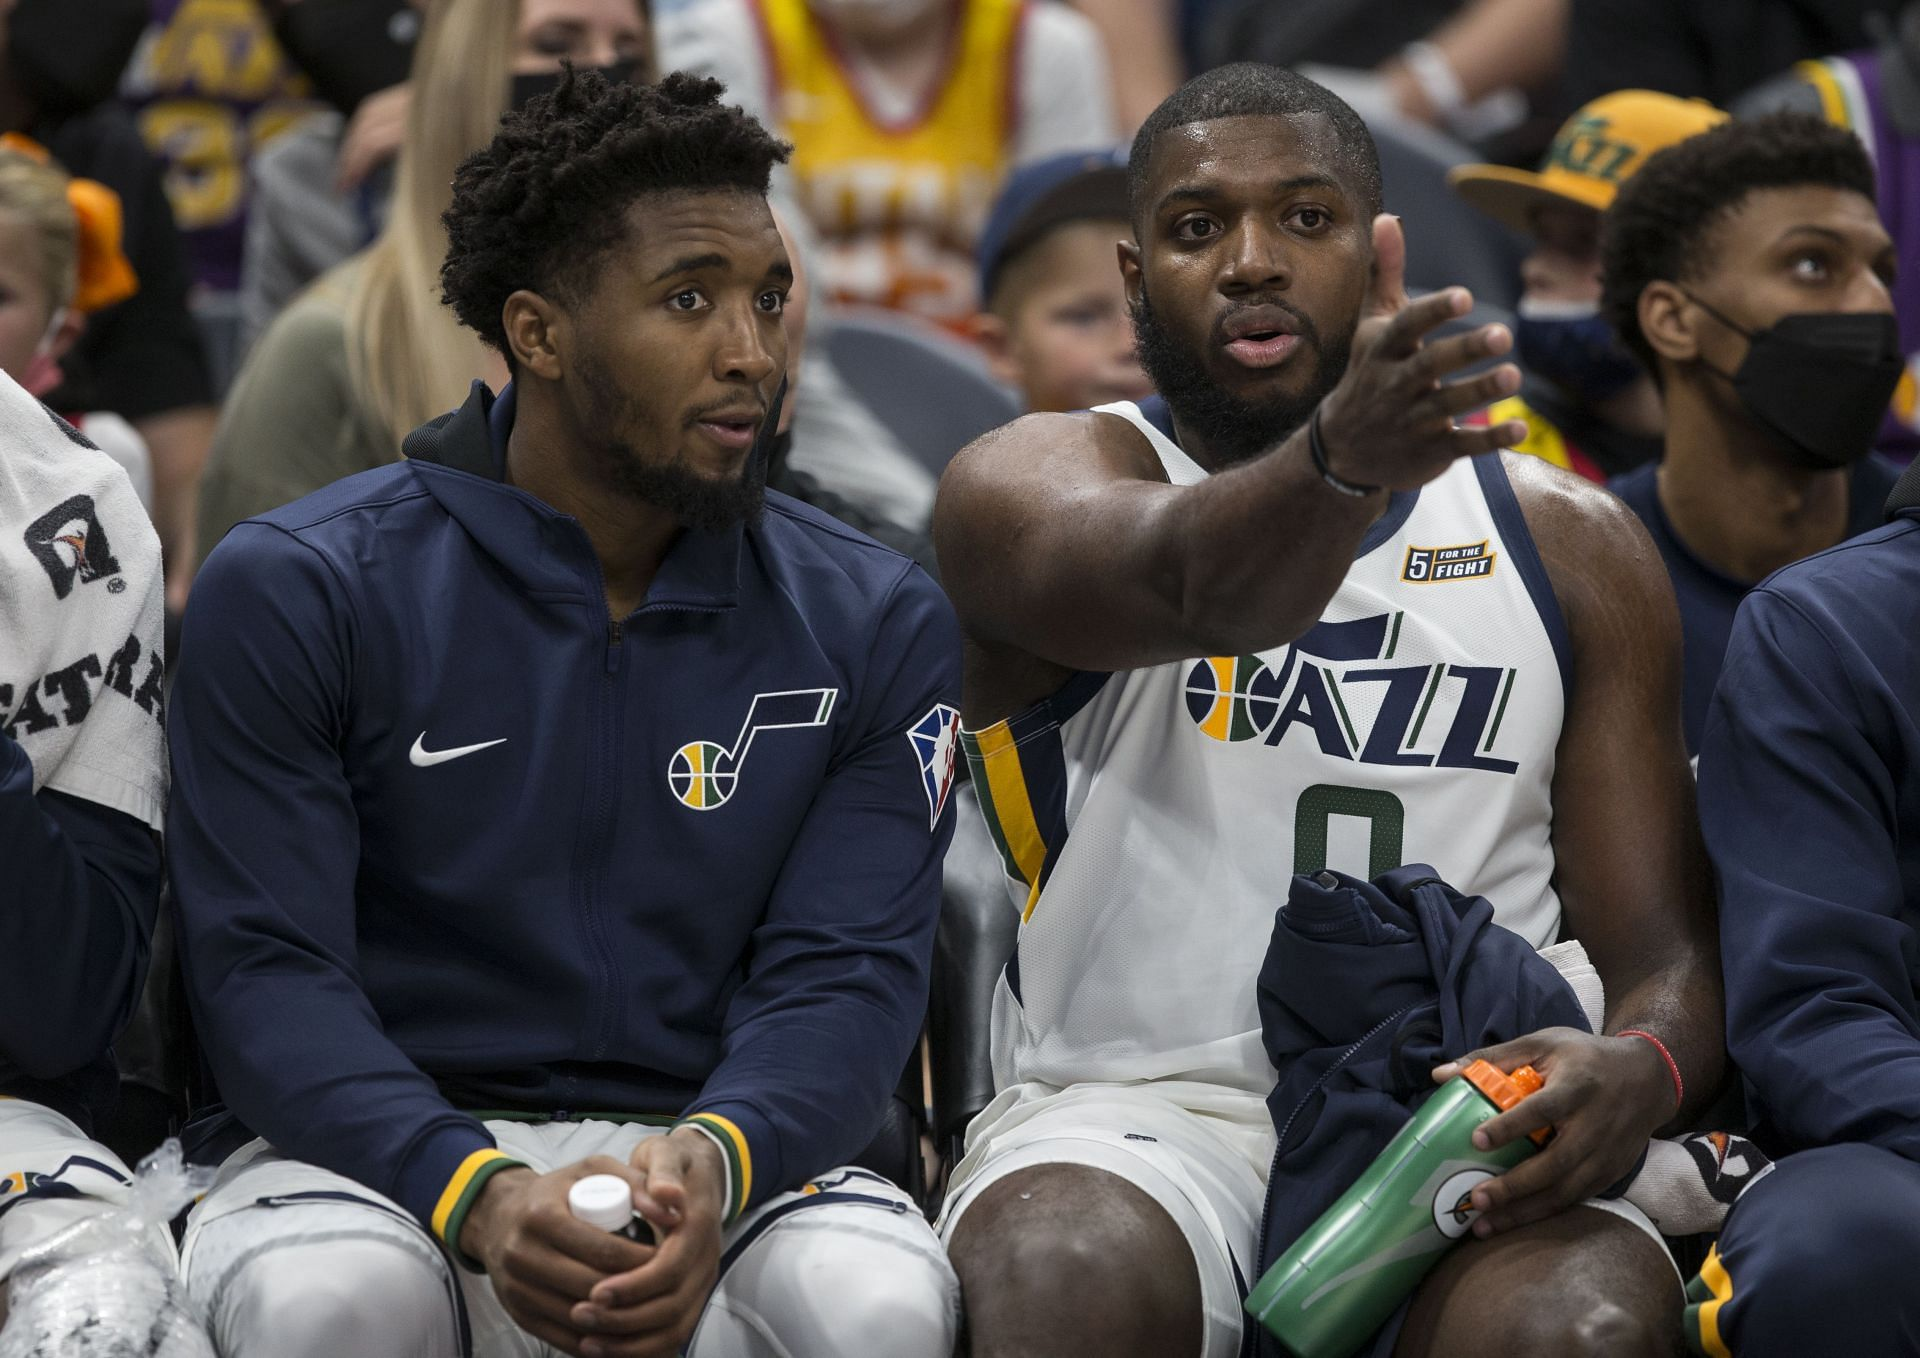 The Utah Jazz could make a surprisingly deep run in the 2022 NBA playoffs